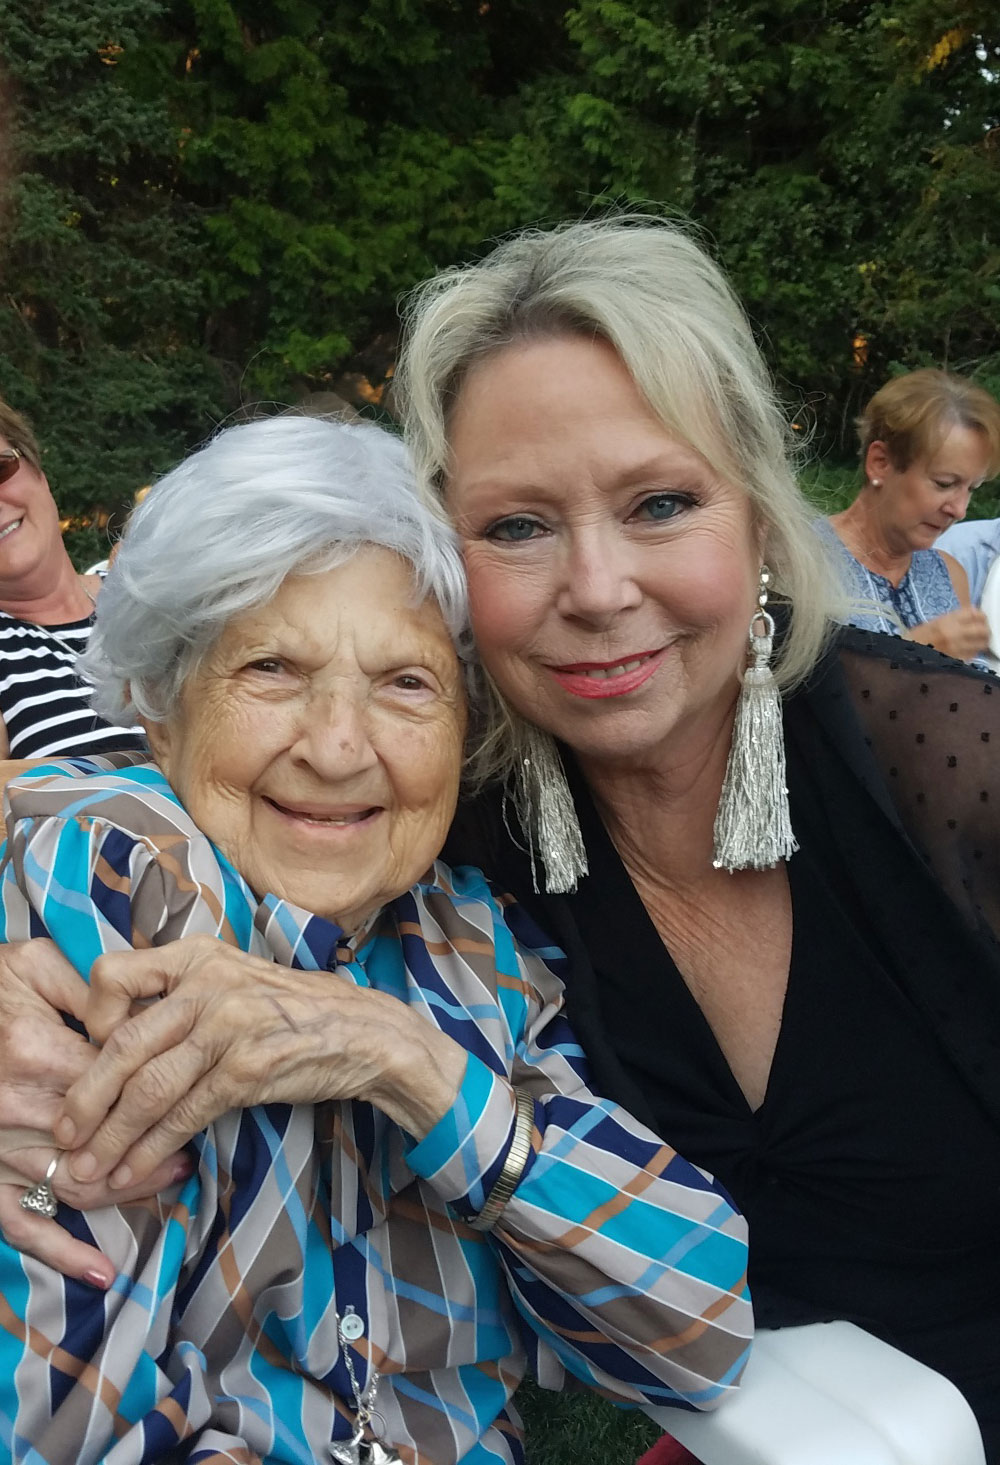 Rio Sandidge and Aurora Vaentinetti' at RLS Productions 2019 Concerts in the Gardens